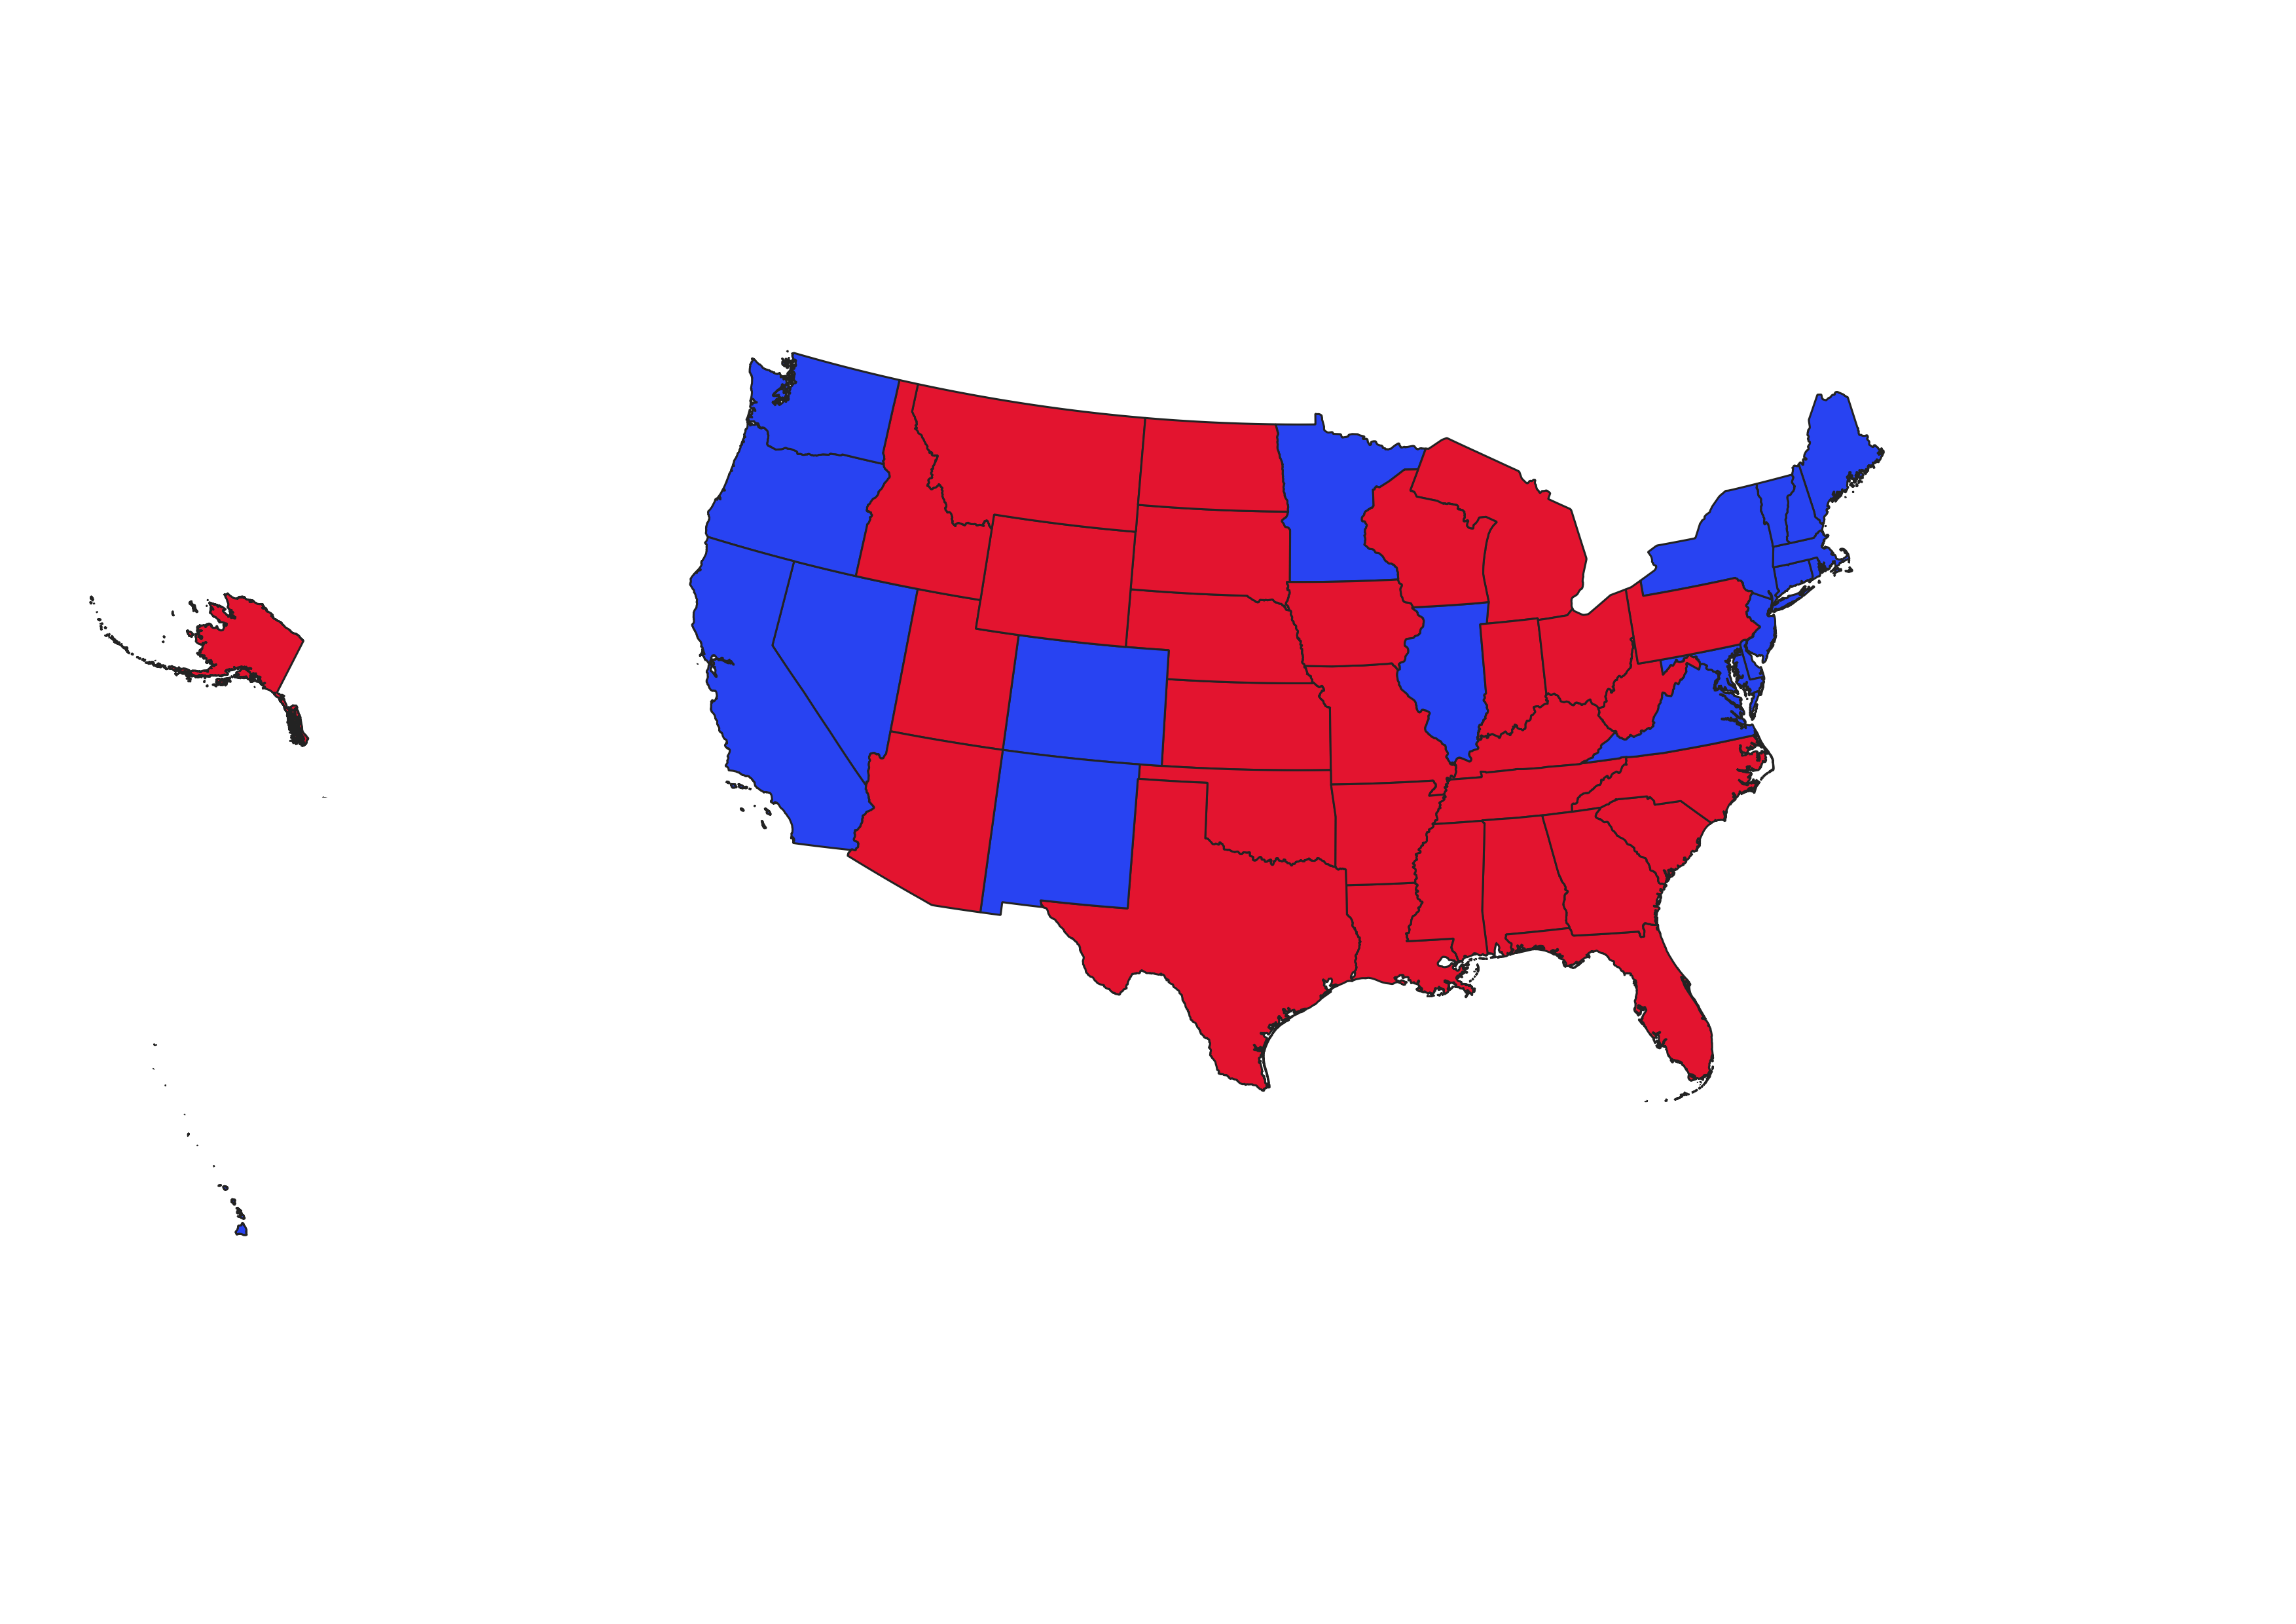 map of us showing 2016 presidential election results. states colored either red or blue